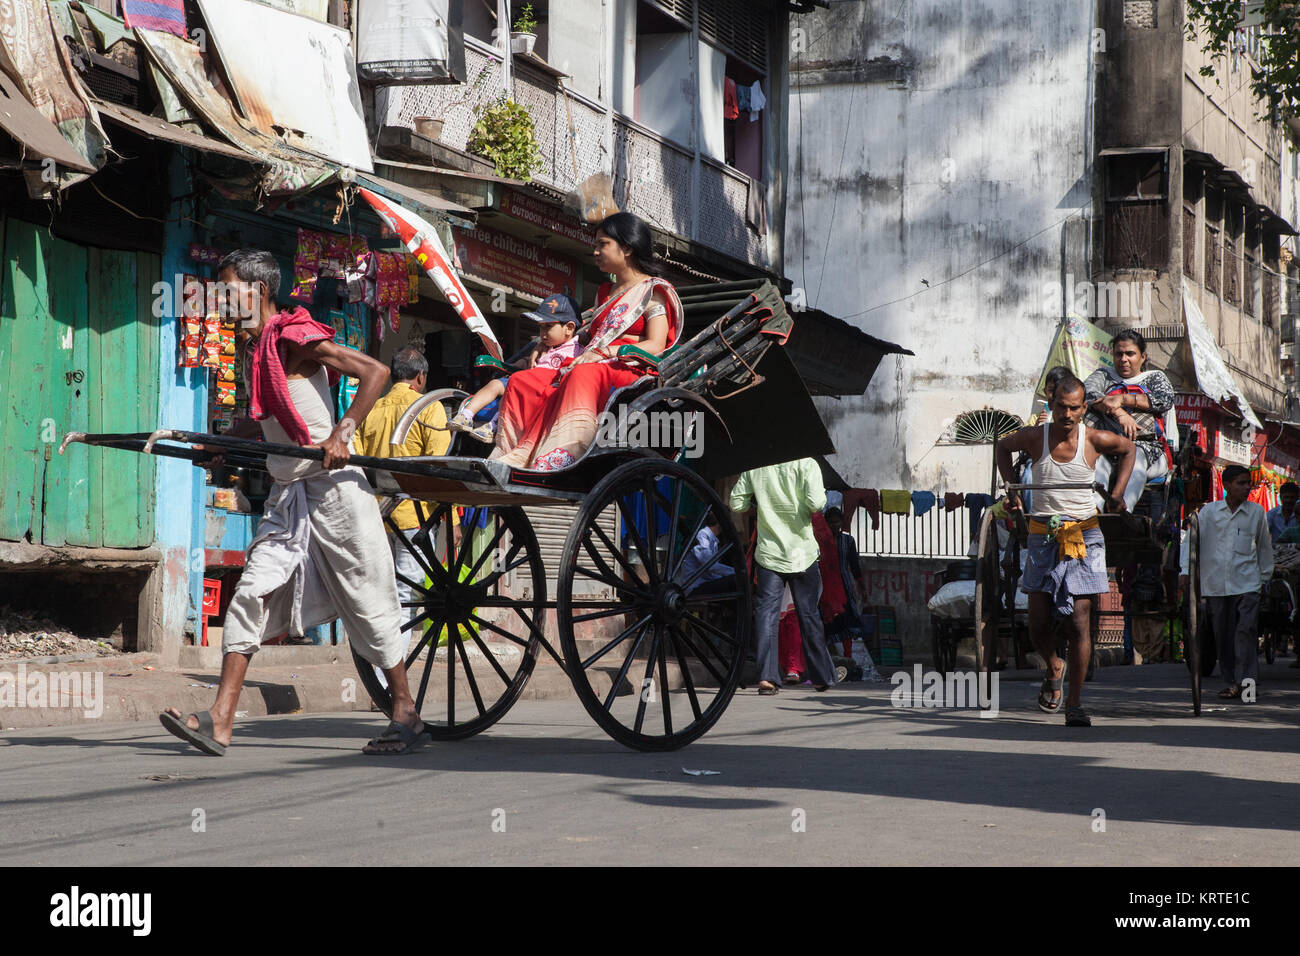 A hand-pulled rickshaw carrys passengers through the streets of Kolkata, India - Stock Image